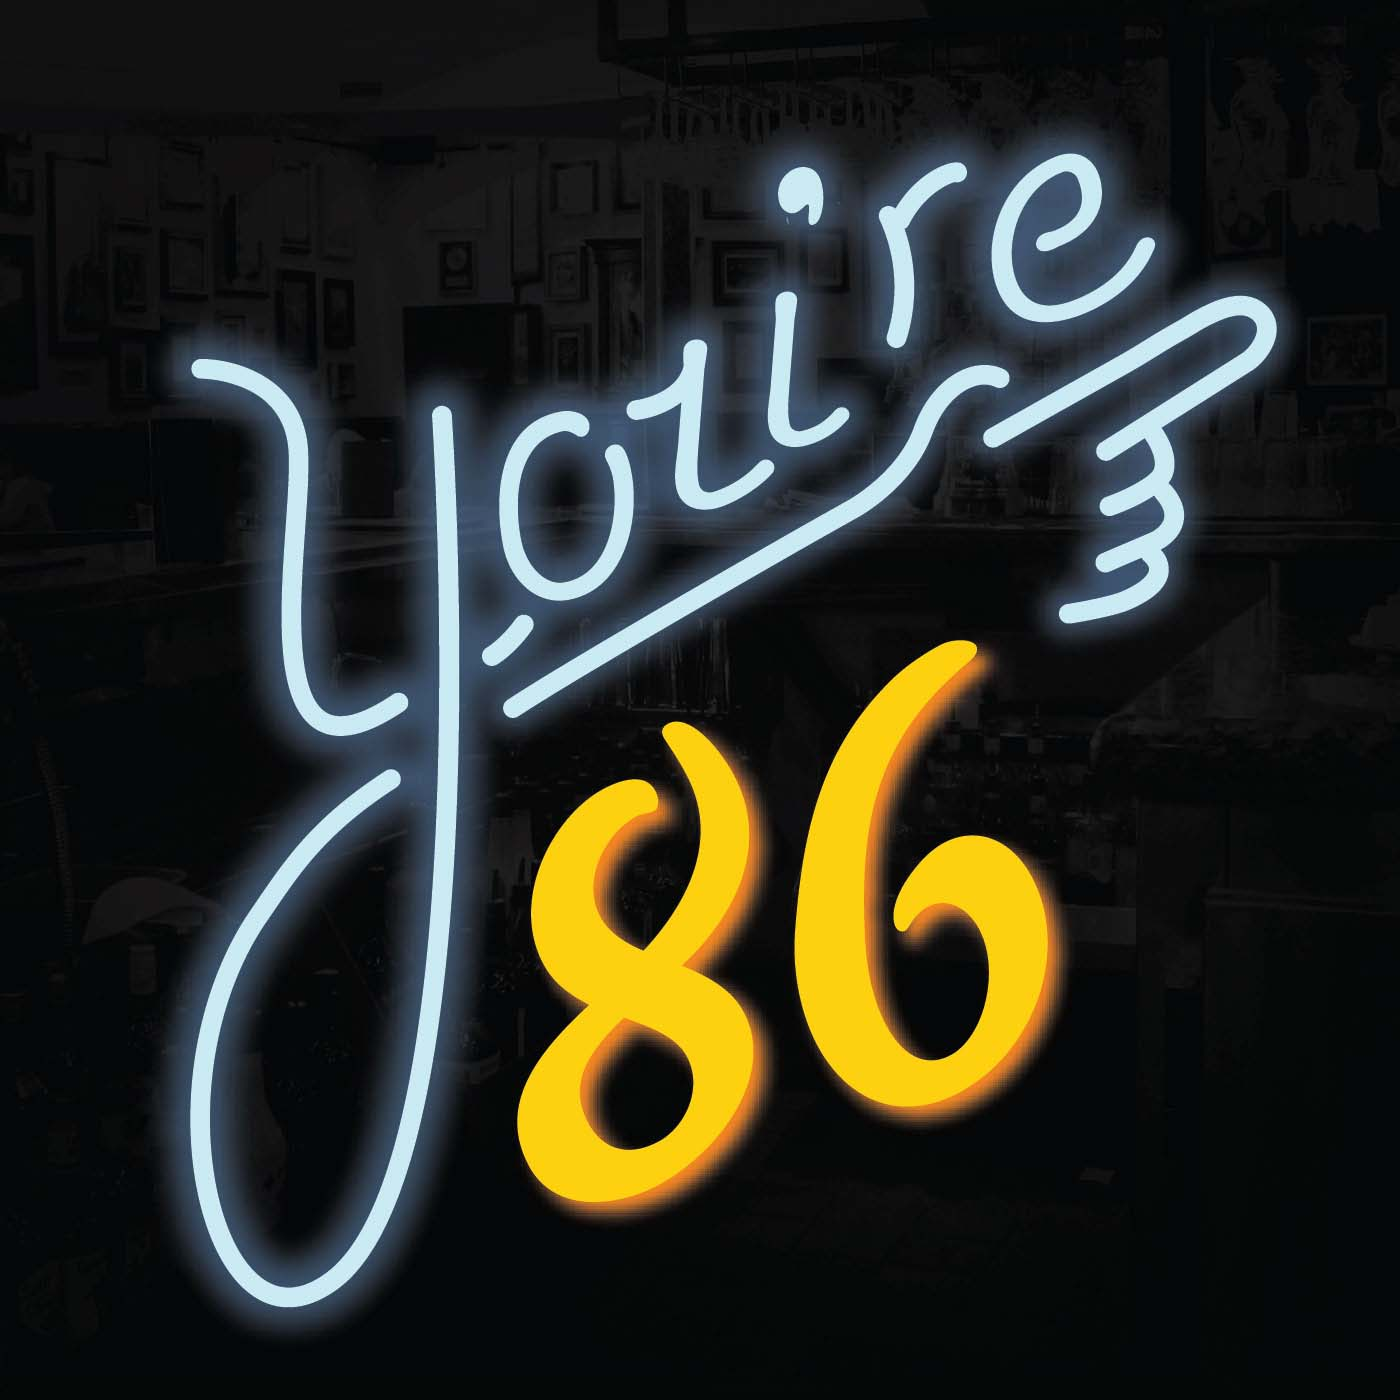 You're 86